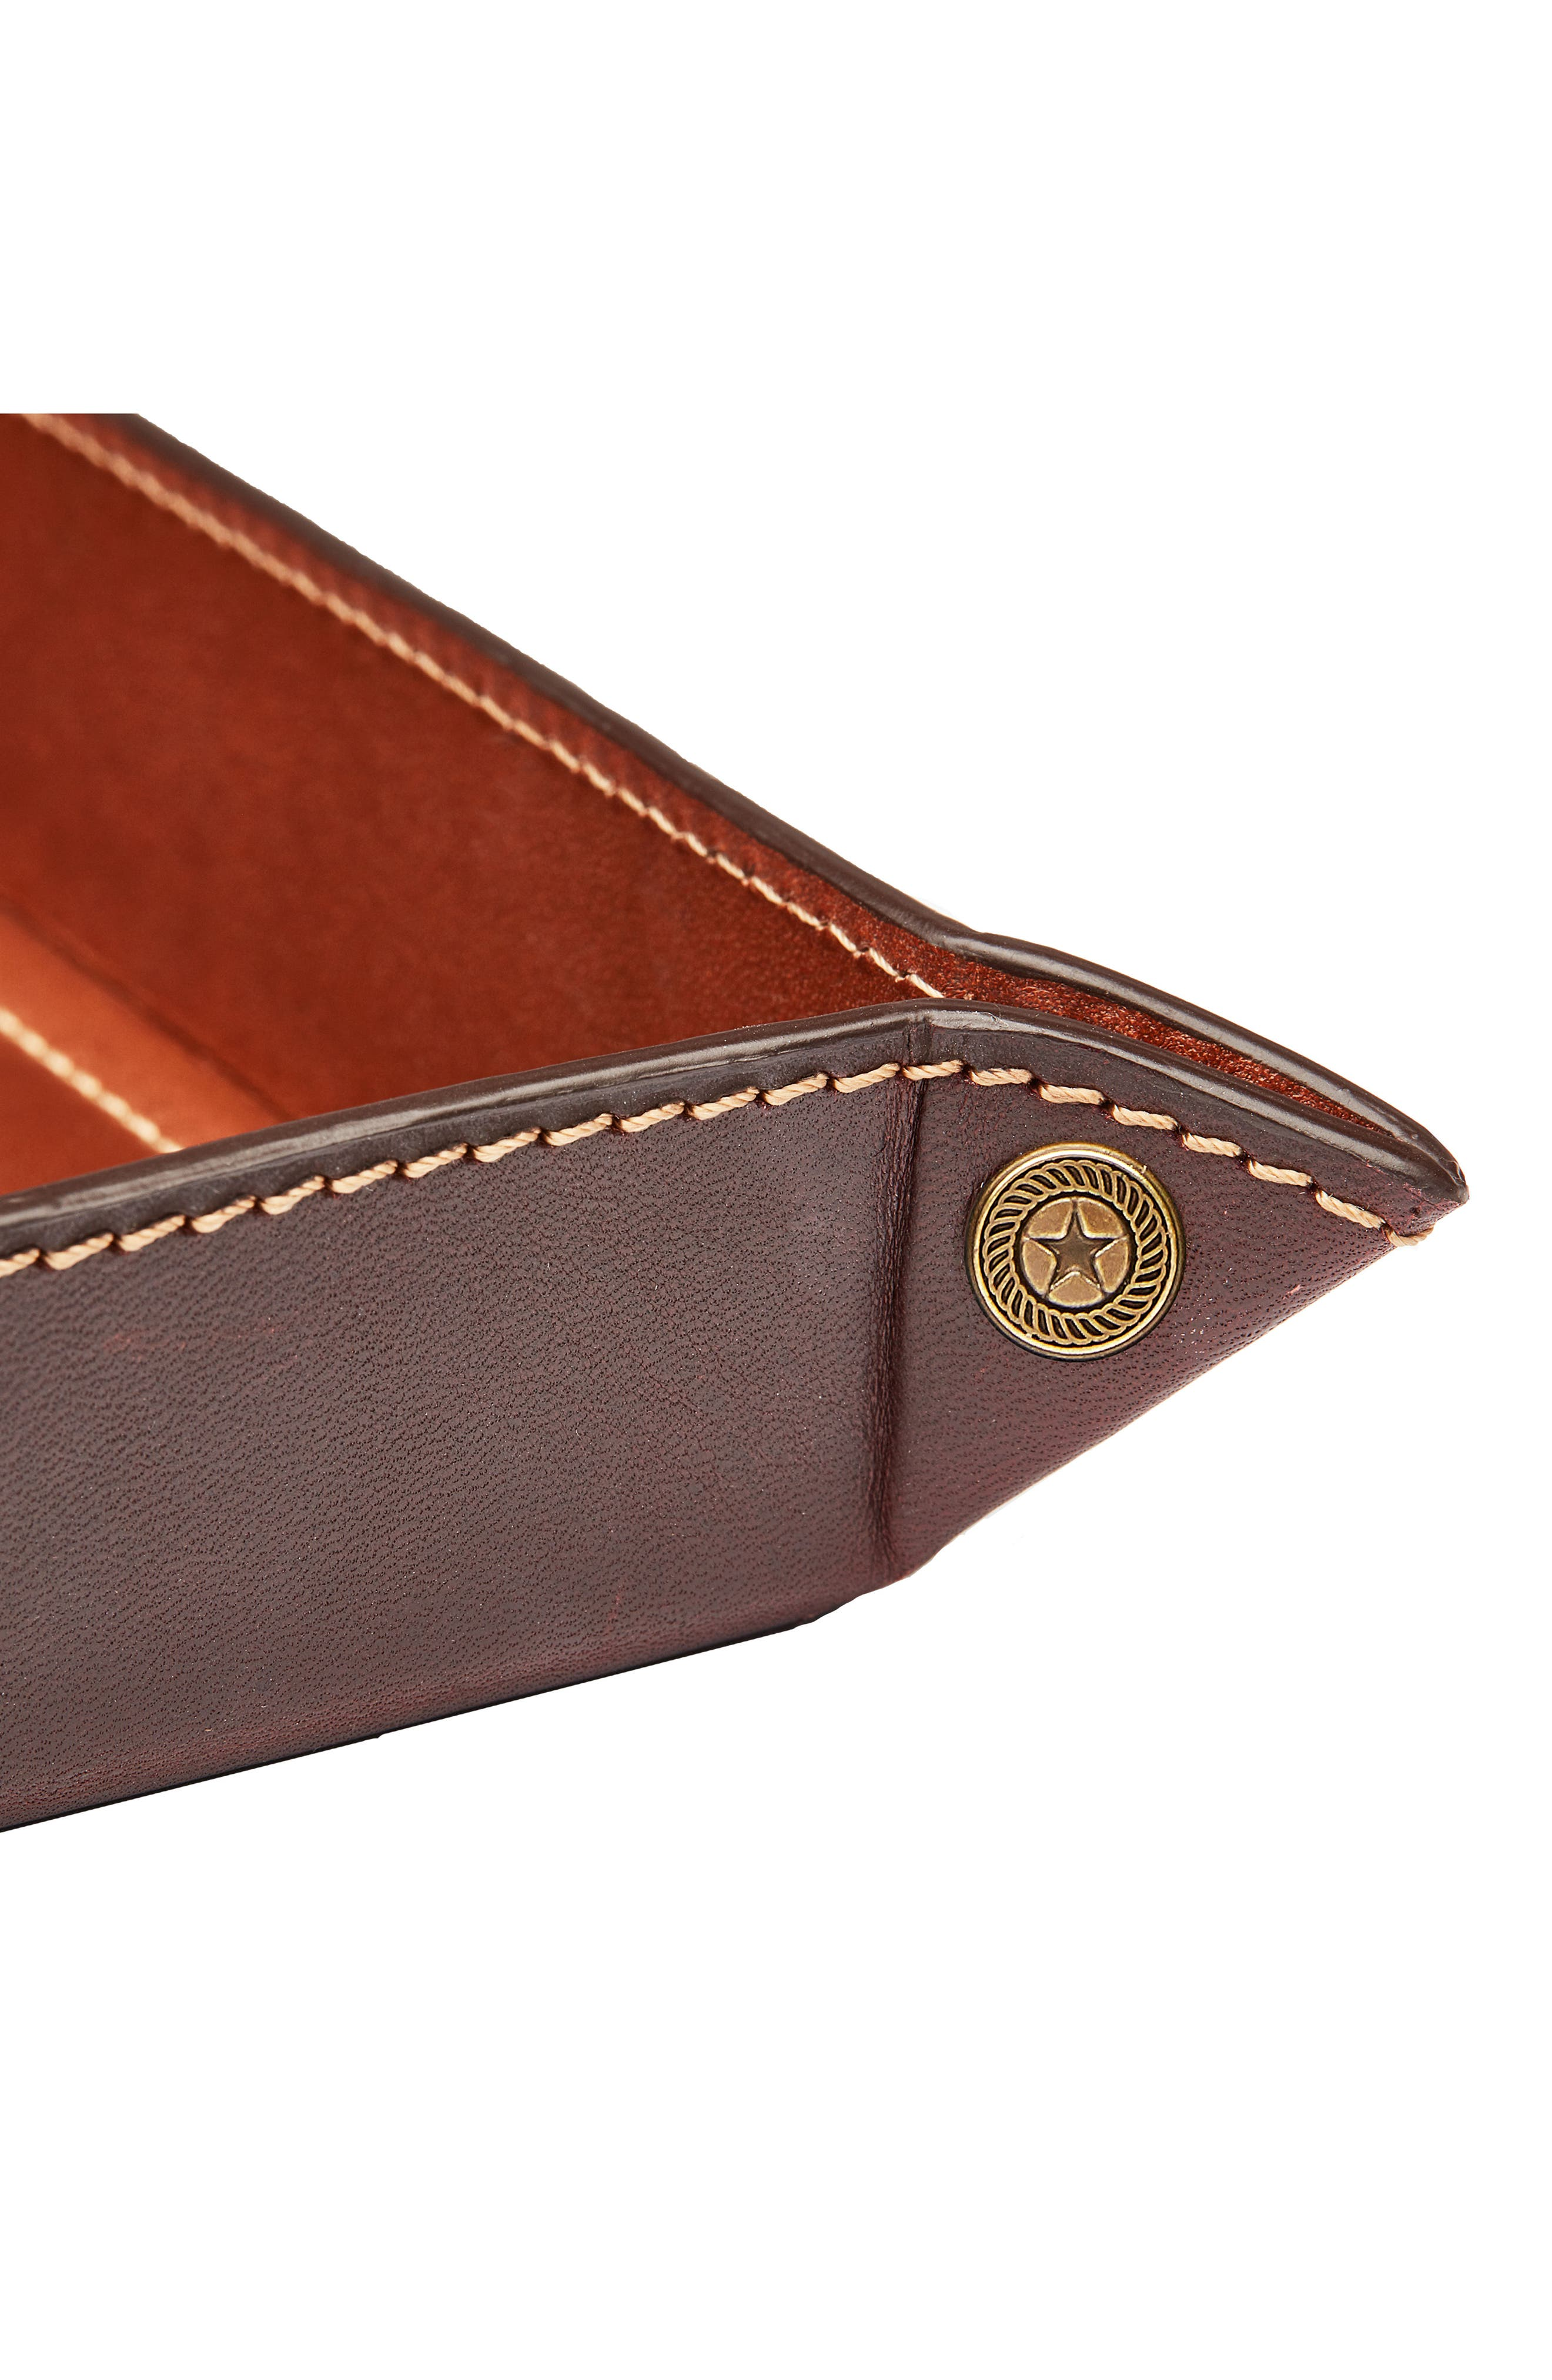 Small Pinched Leather Valet Tray,                             Alternate thumbnail 3, color,                             230